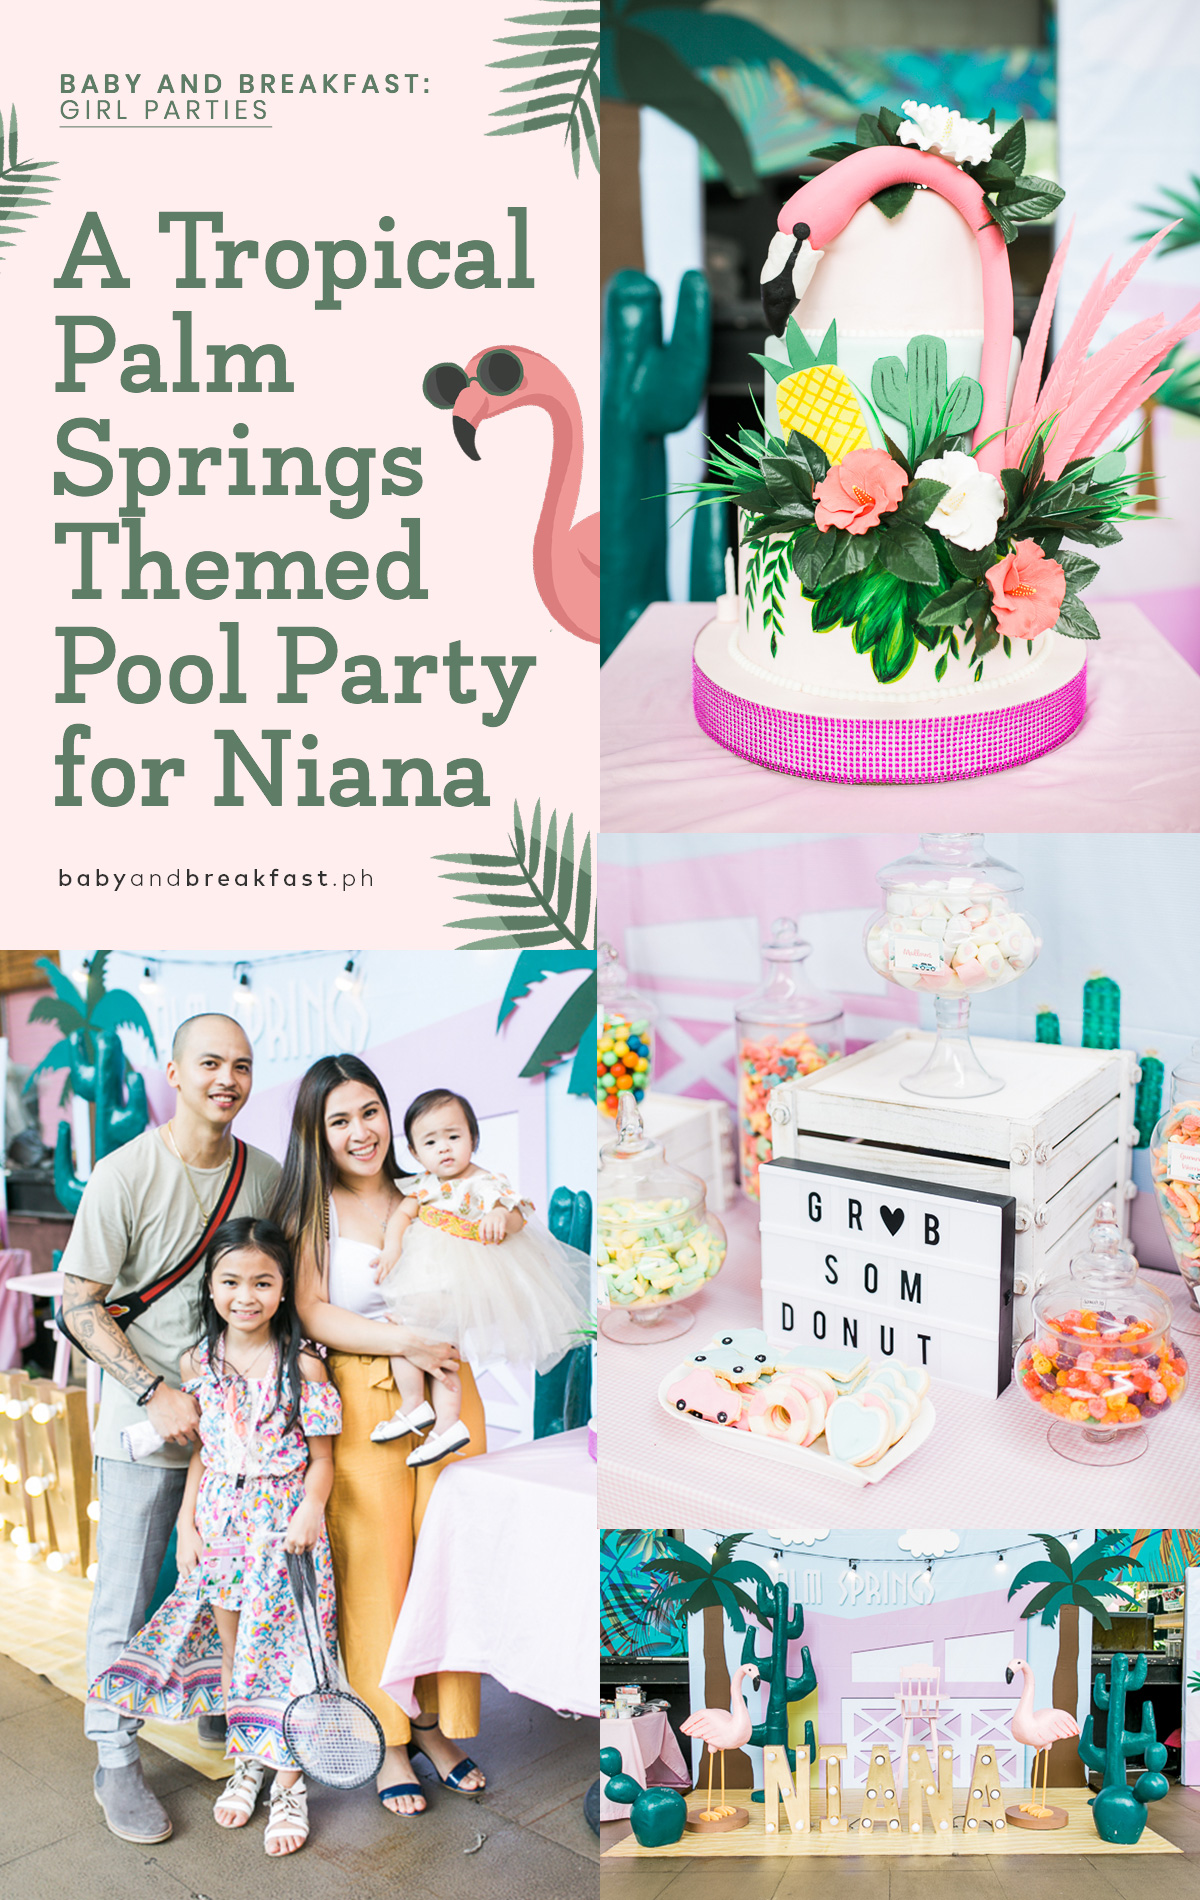 Baby and Breakfast: Girl Parties A Tropical Palm Springs Themed Pool Party for Niana